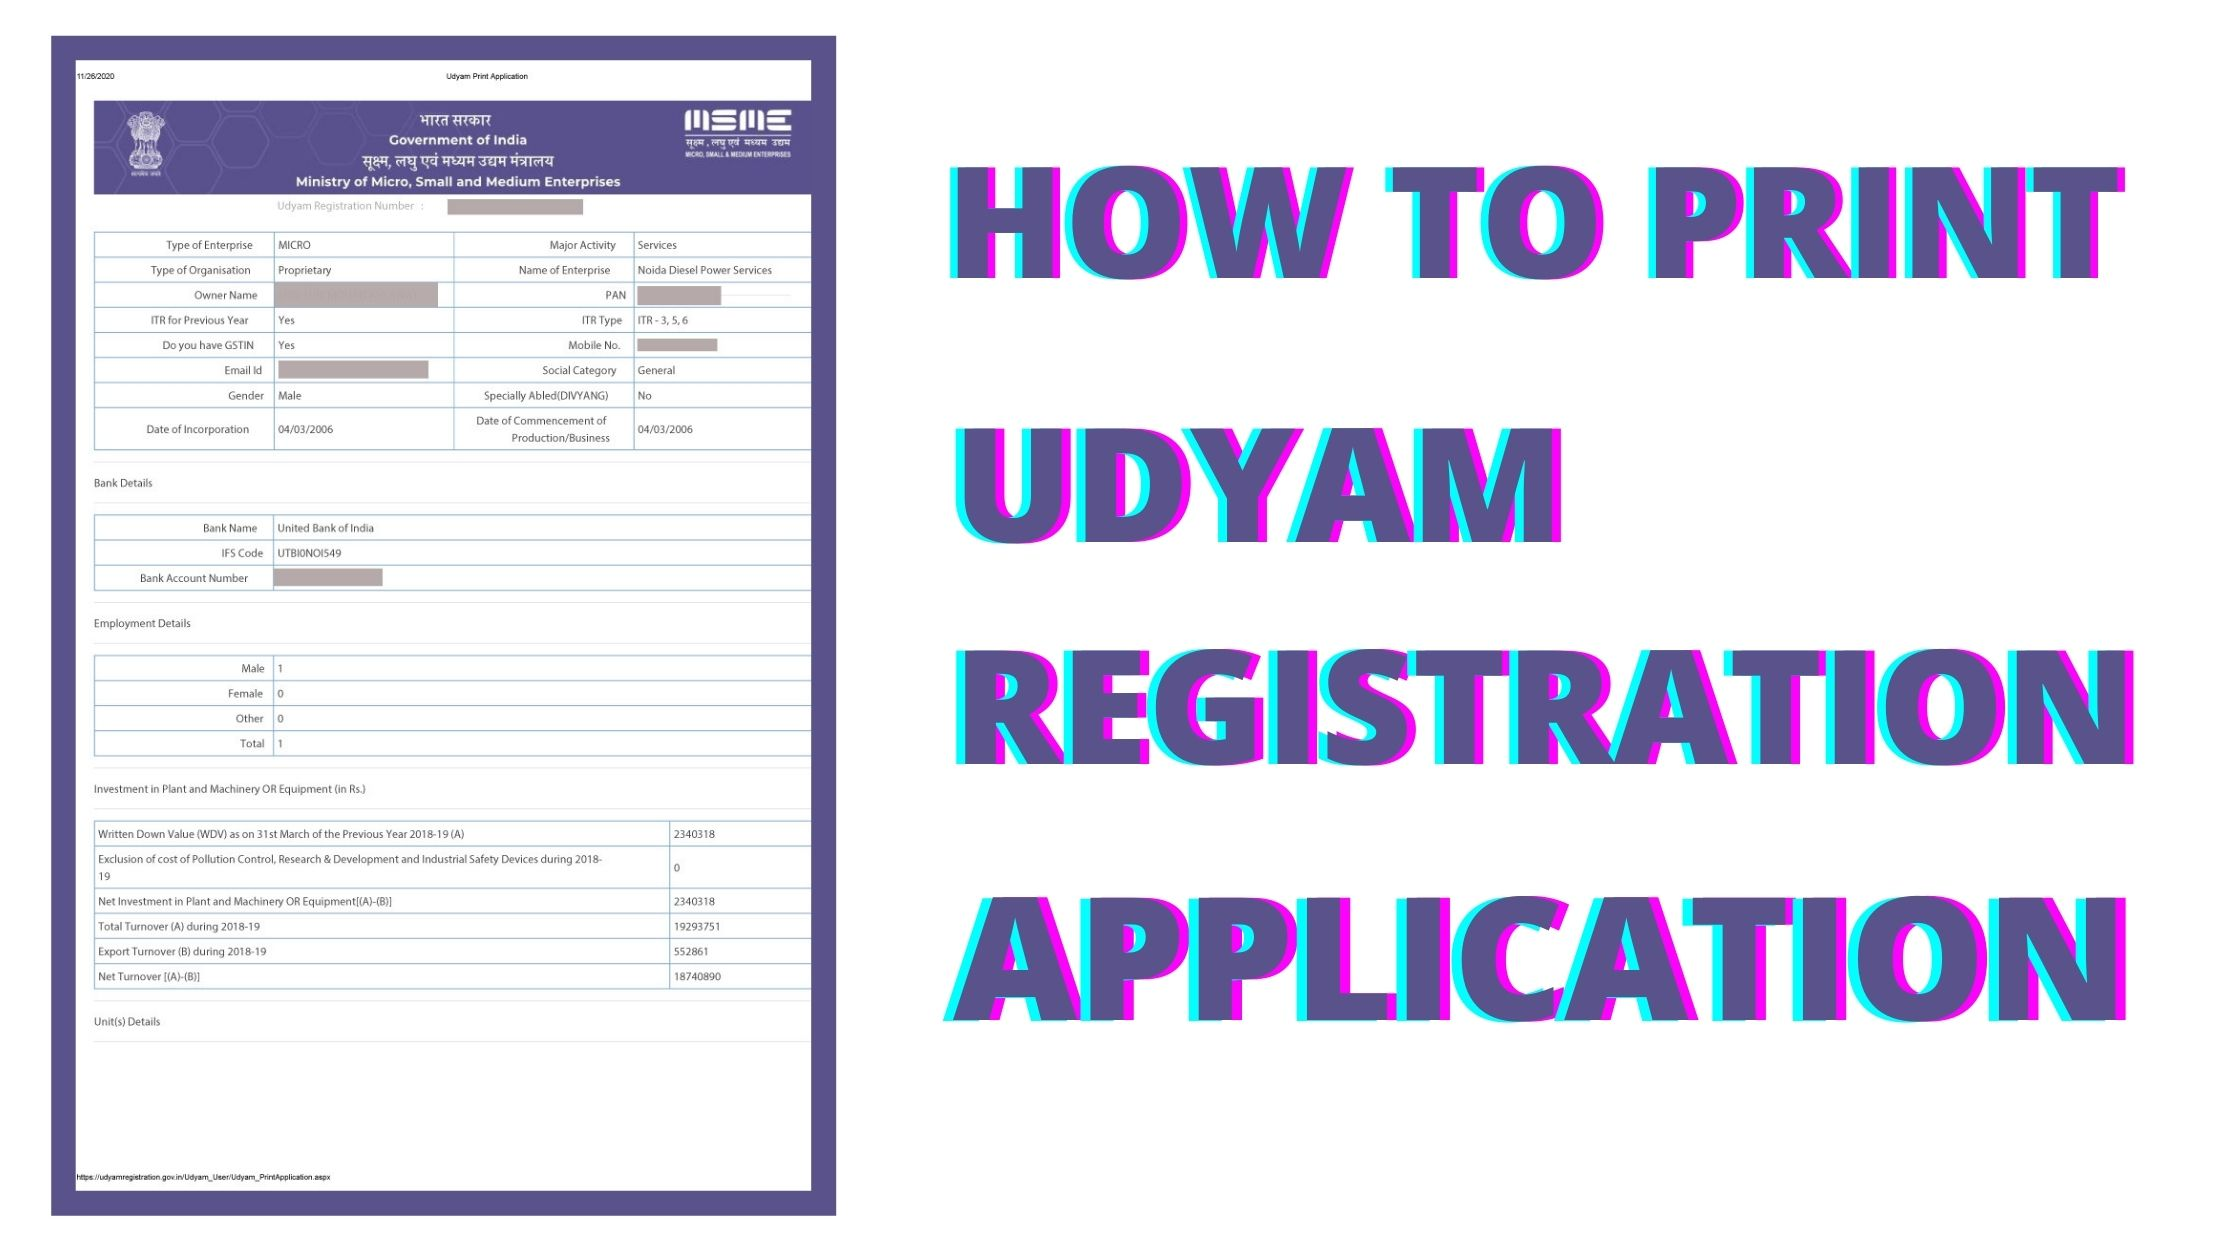 How to Print Udyam Registration Application